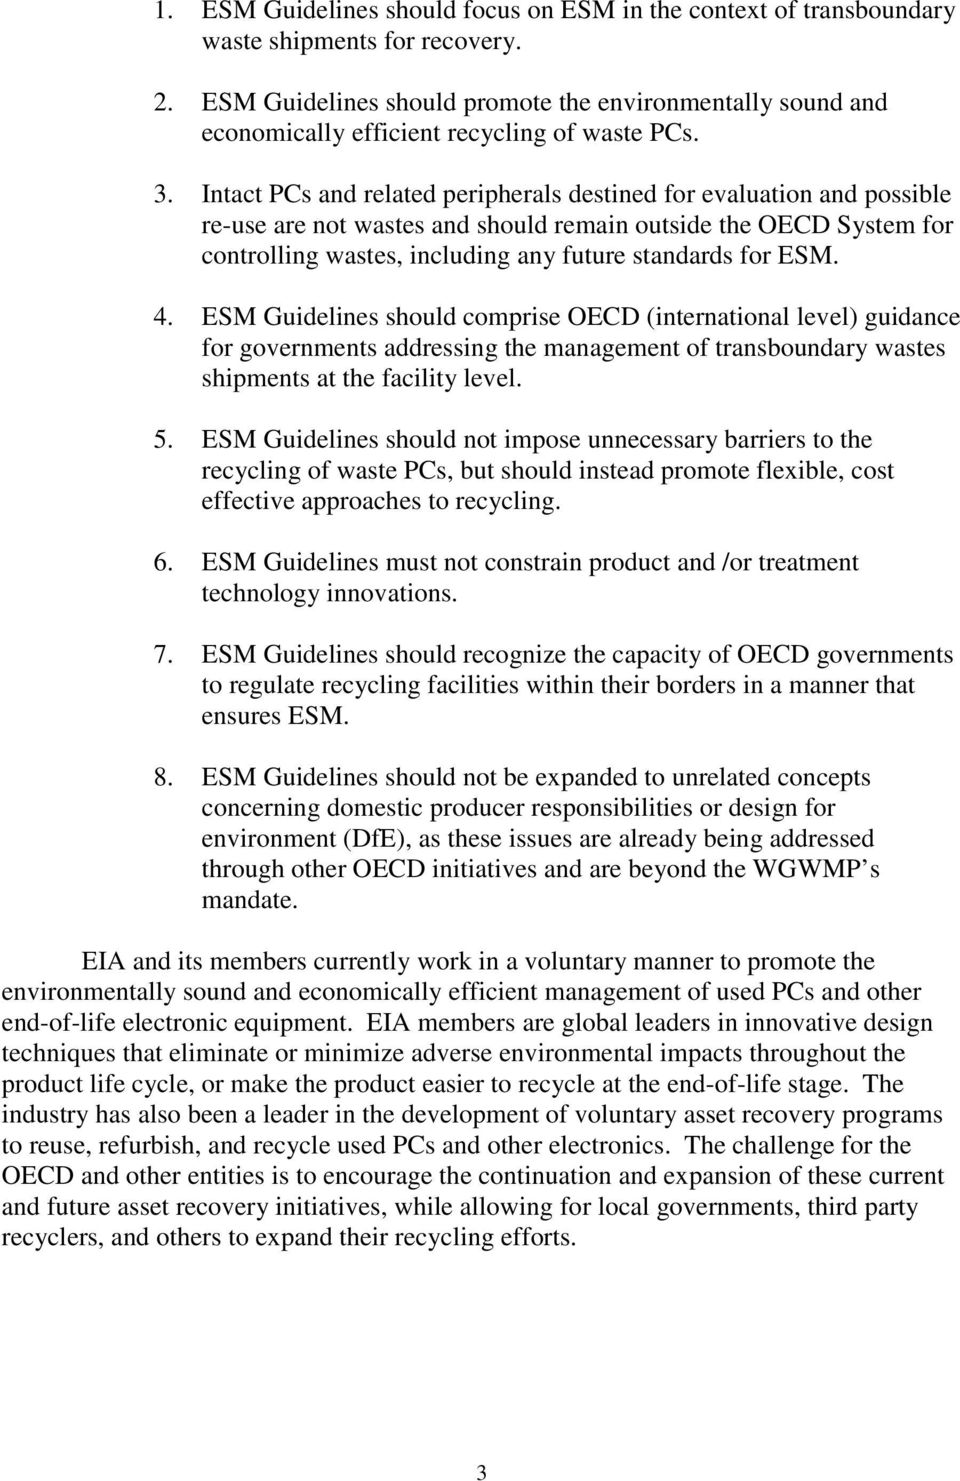 Intact PCs and related peripherals destined for evaluation and possible re-use are not wastes and should remain outside the OECD System for controlling wastes, including any future standards for ESM.